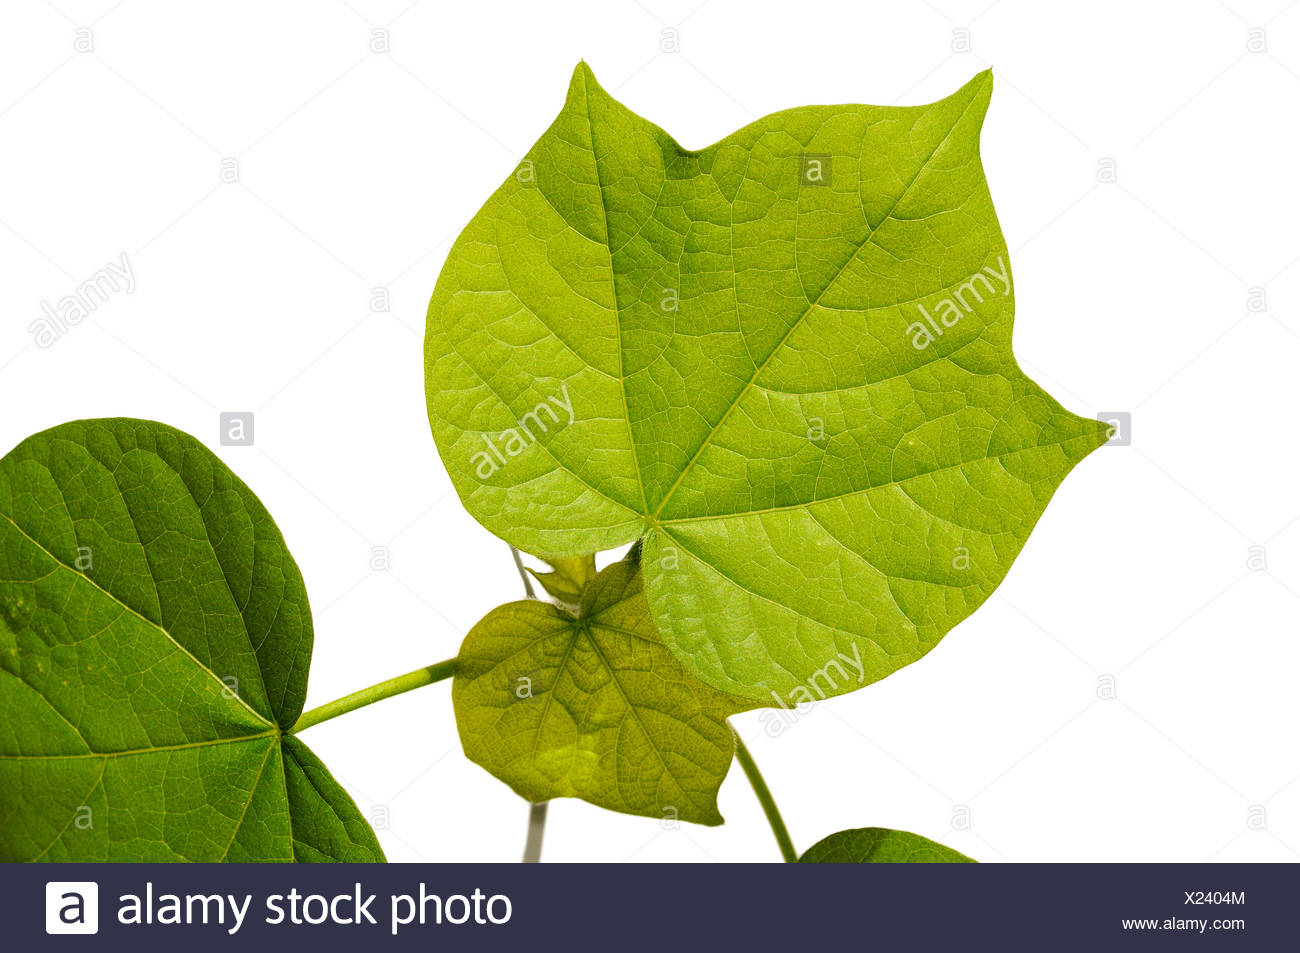 Serrated leaves of a cotton plant (Gossypium herbaceum) - Stock Image